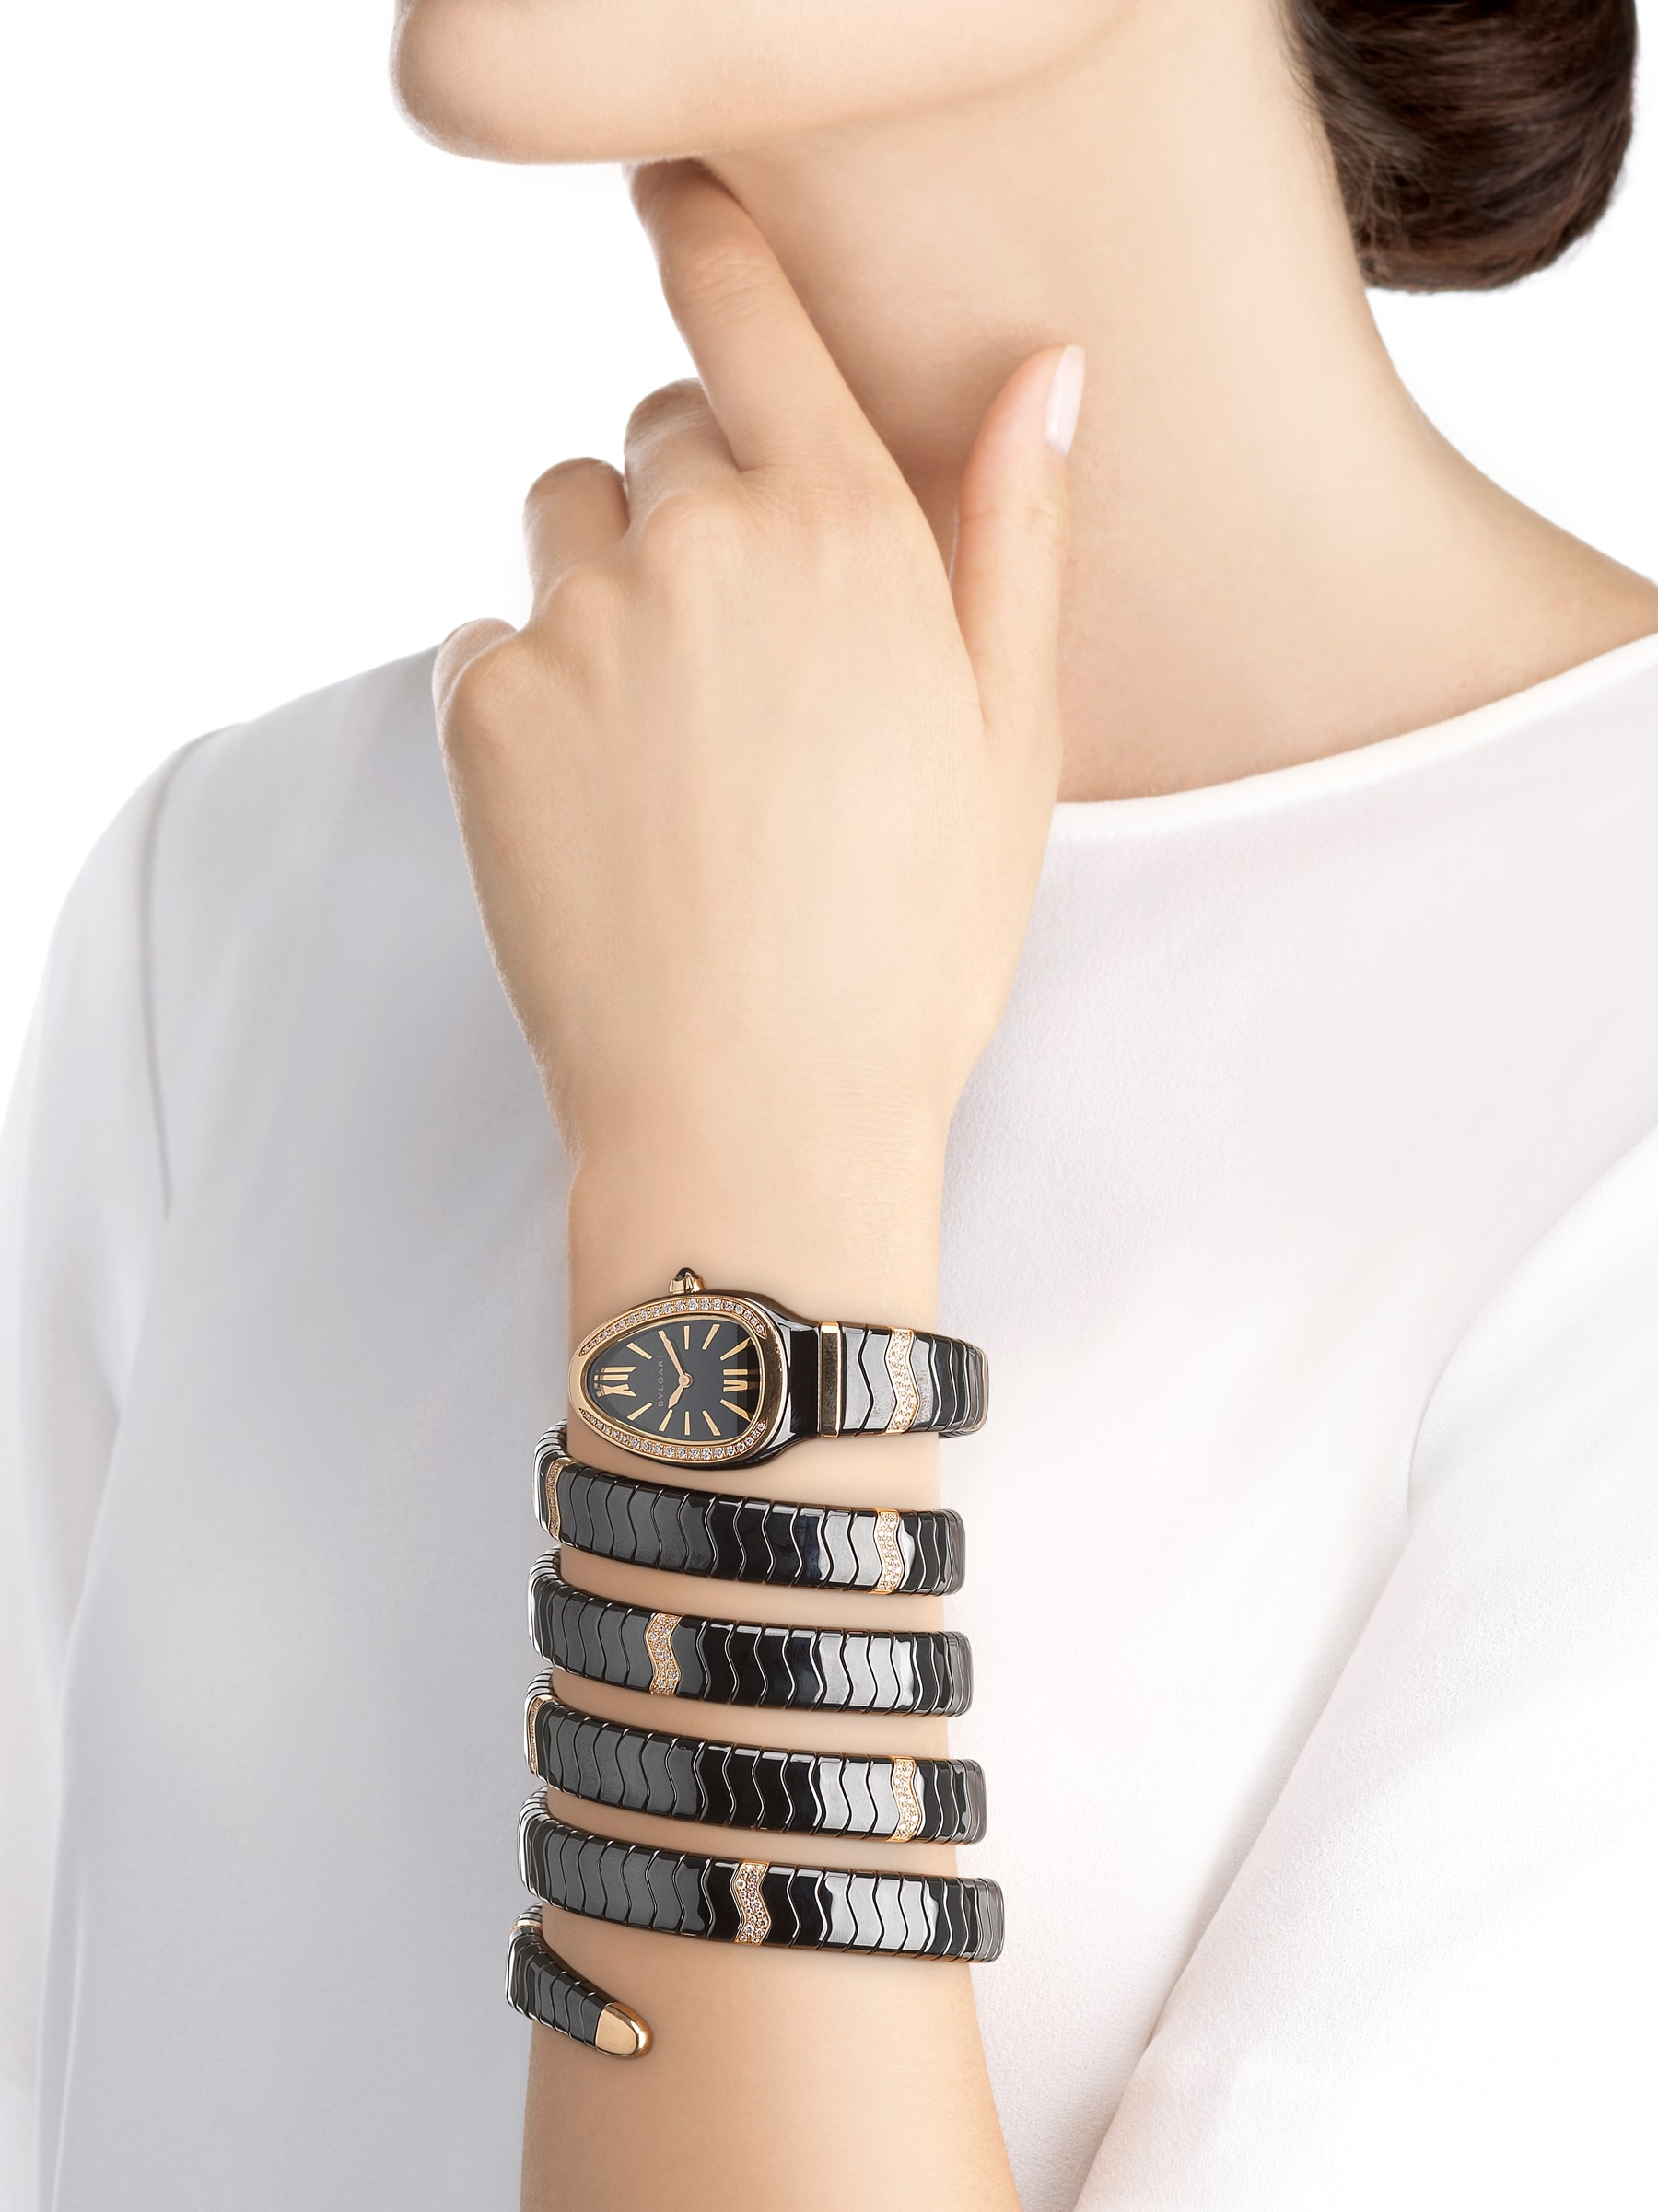 Serpenti Spiga five-spiral watch with black ceramic case, 18 kt rose gold bezel set with diamonds, black lacquered dial, black ceramic bracelet set with 18 kt rose gold elements and diamonds 102888 image 4